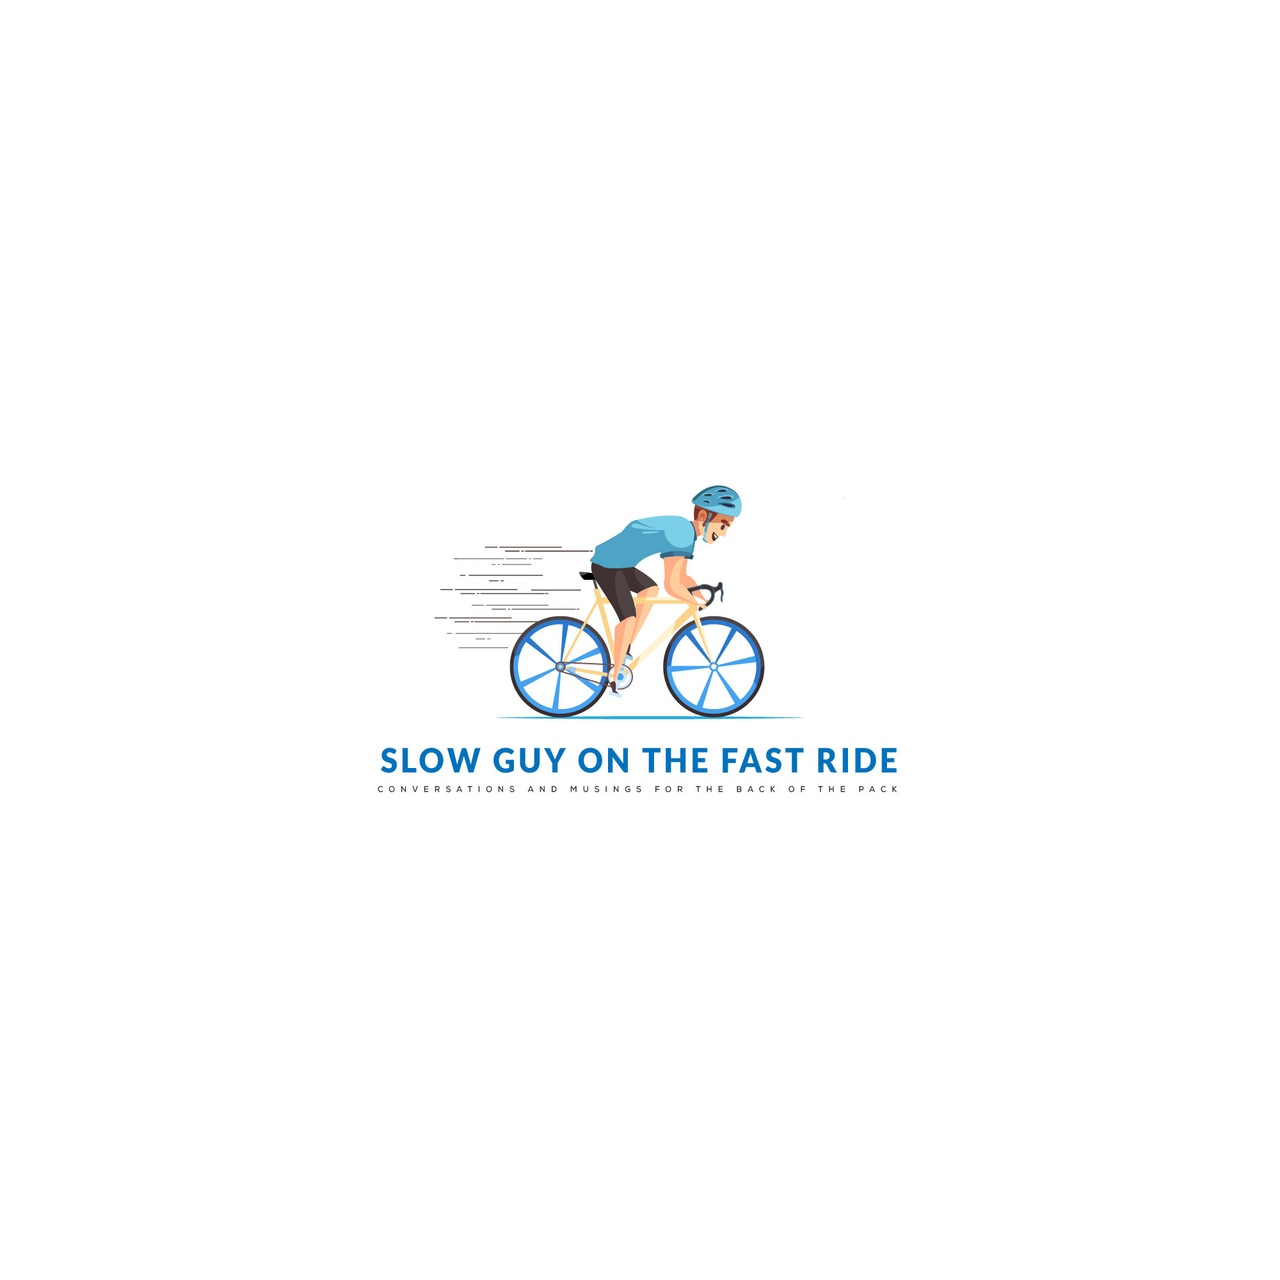 Slow Guy on the Fast Ride